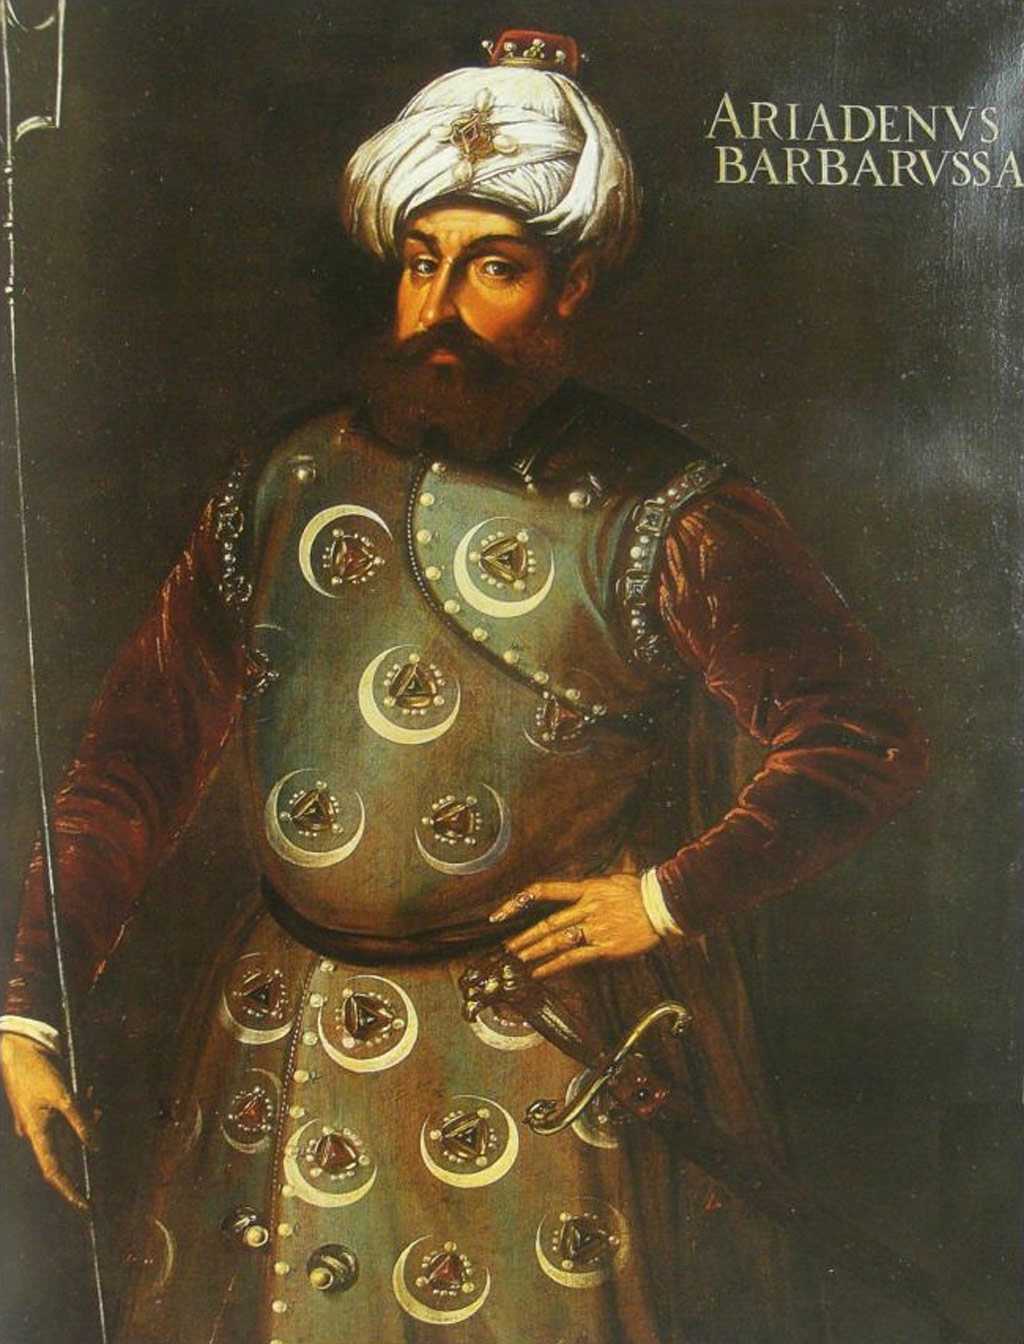 Never one for Khidrn around, Barbarossa poses here as the mediterranean's most feared corsair.